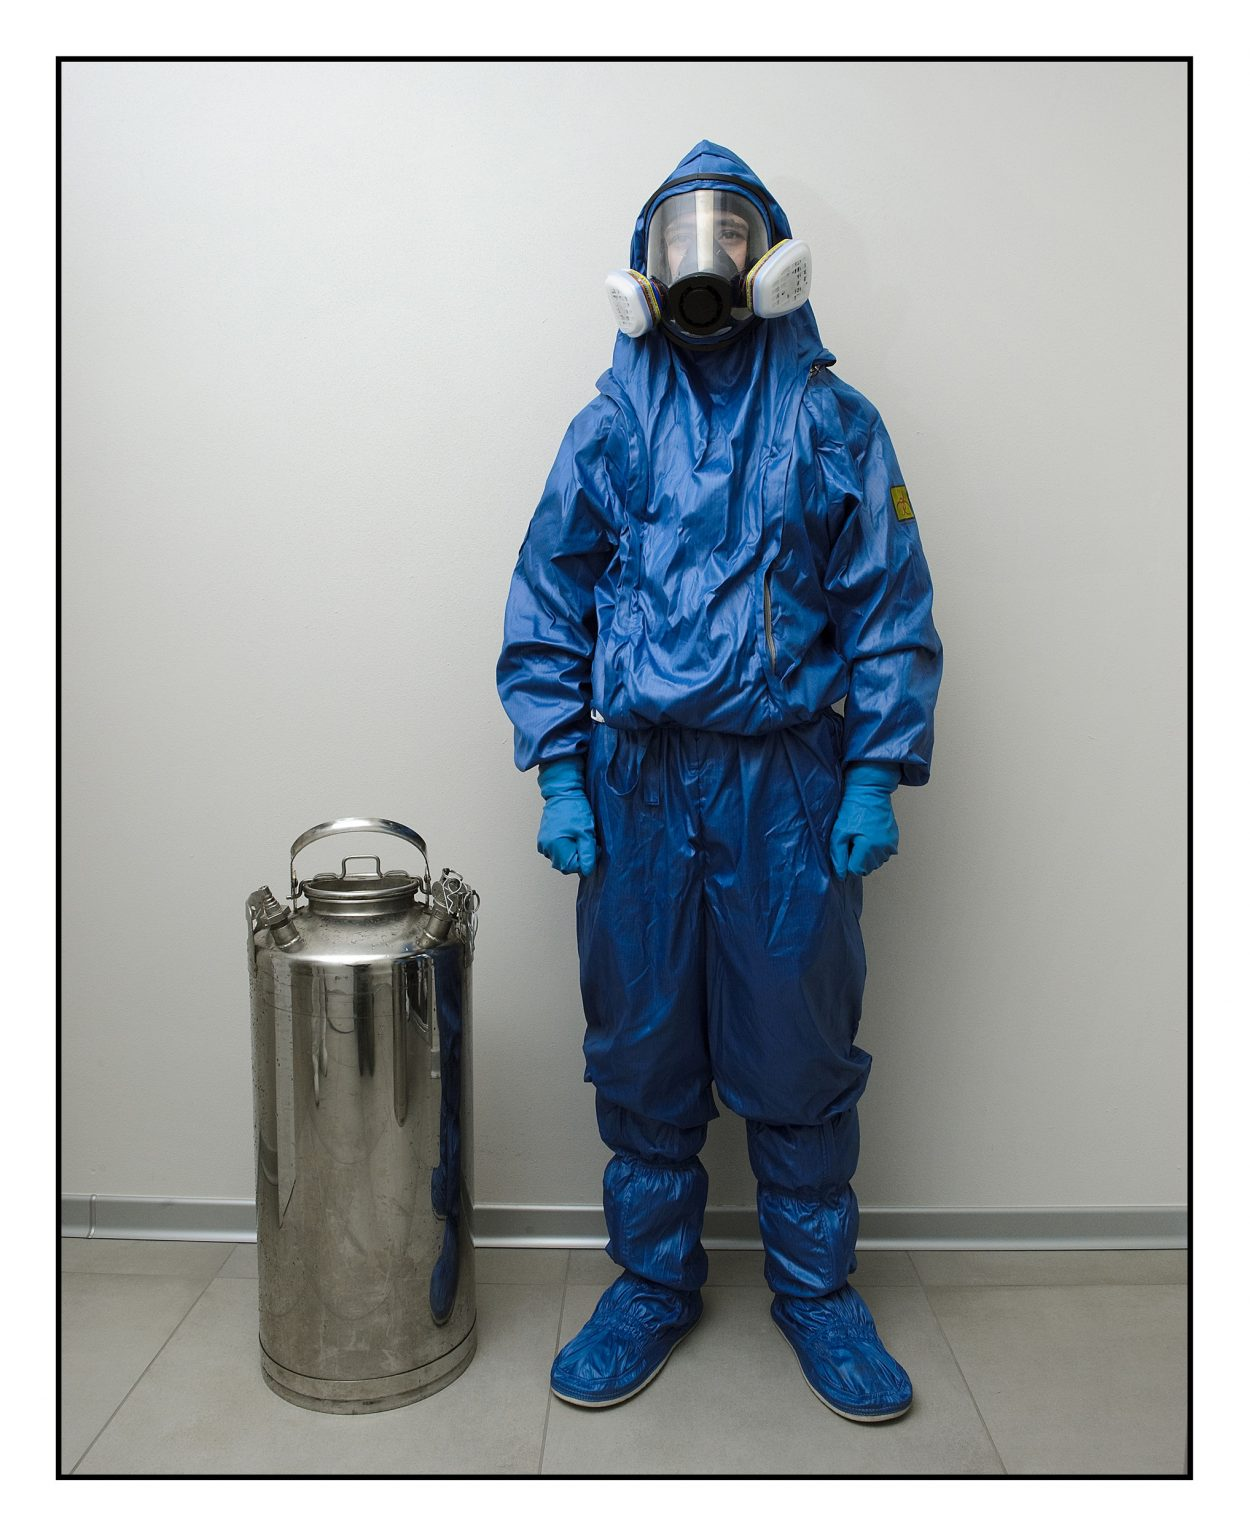 """A soldier of the Special Chemical, Bacteriological, Radioactive and Nuclear Defense Forces of the Russian army waiting for the elevator in the hallway of the nursing home, to carry equipment for sanitation operations into the rooms. The operations are carried out in collaboration with the """"Cremona"""" Biological and Chemical Nuclear Defense Regiment (CBRN) of the Italian army. Ponte San Pietro, Fondazione Casa di Riposo Onlus, April 1st 2020"""